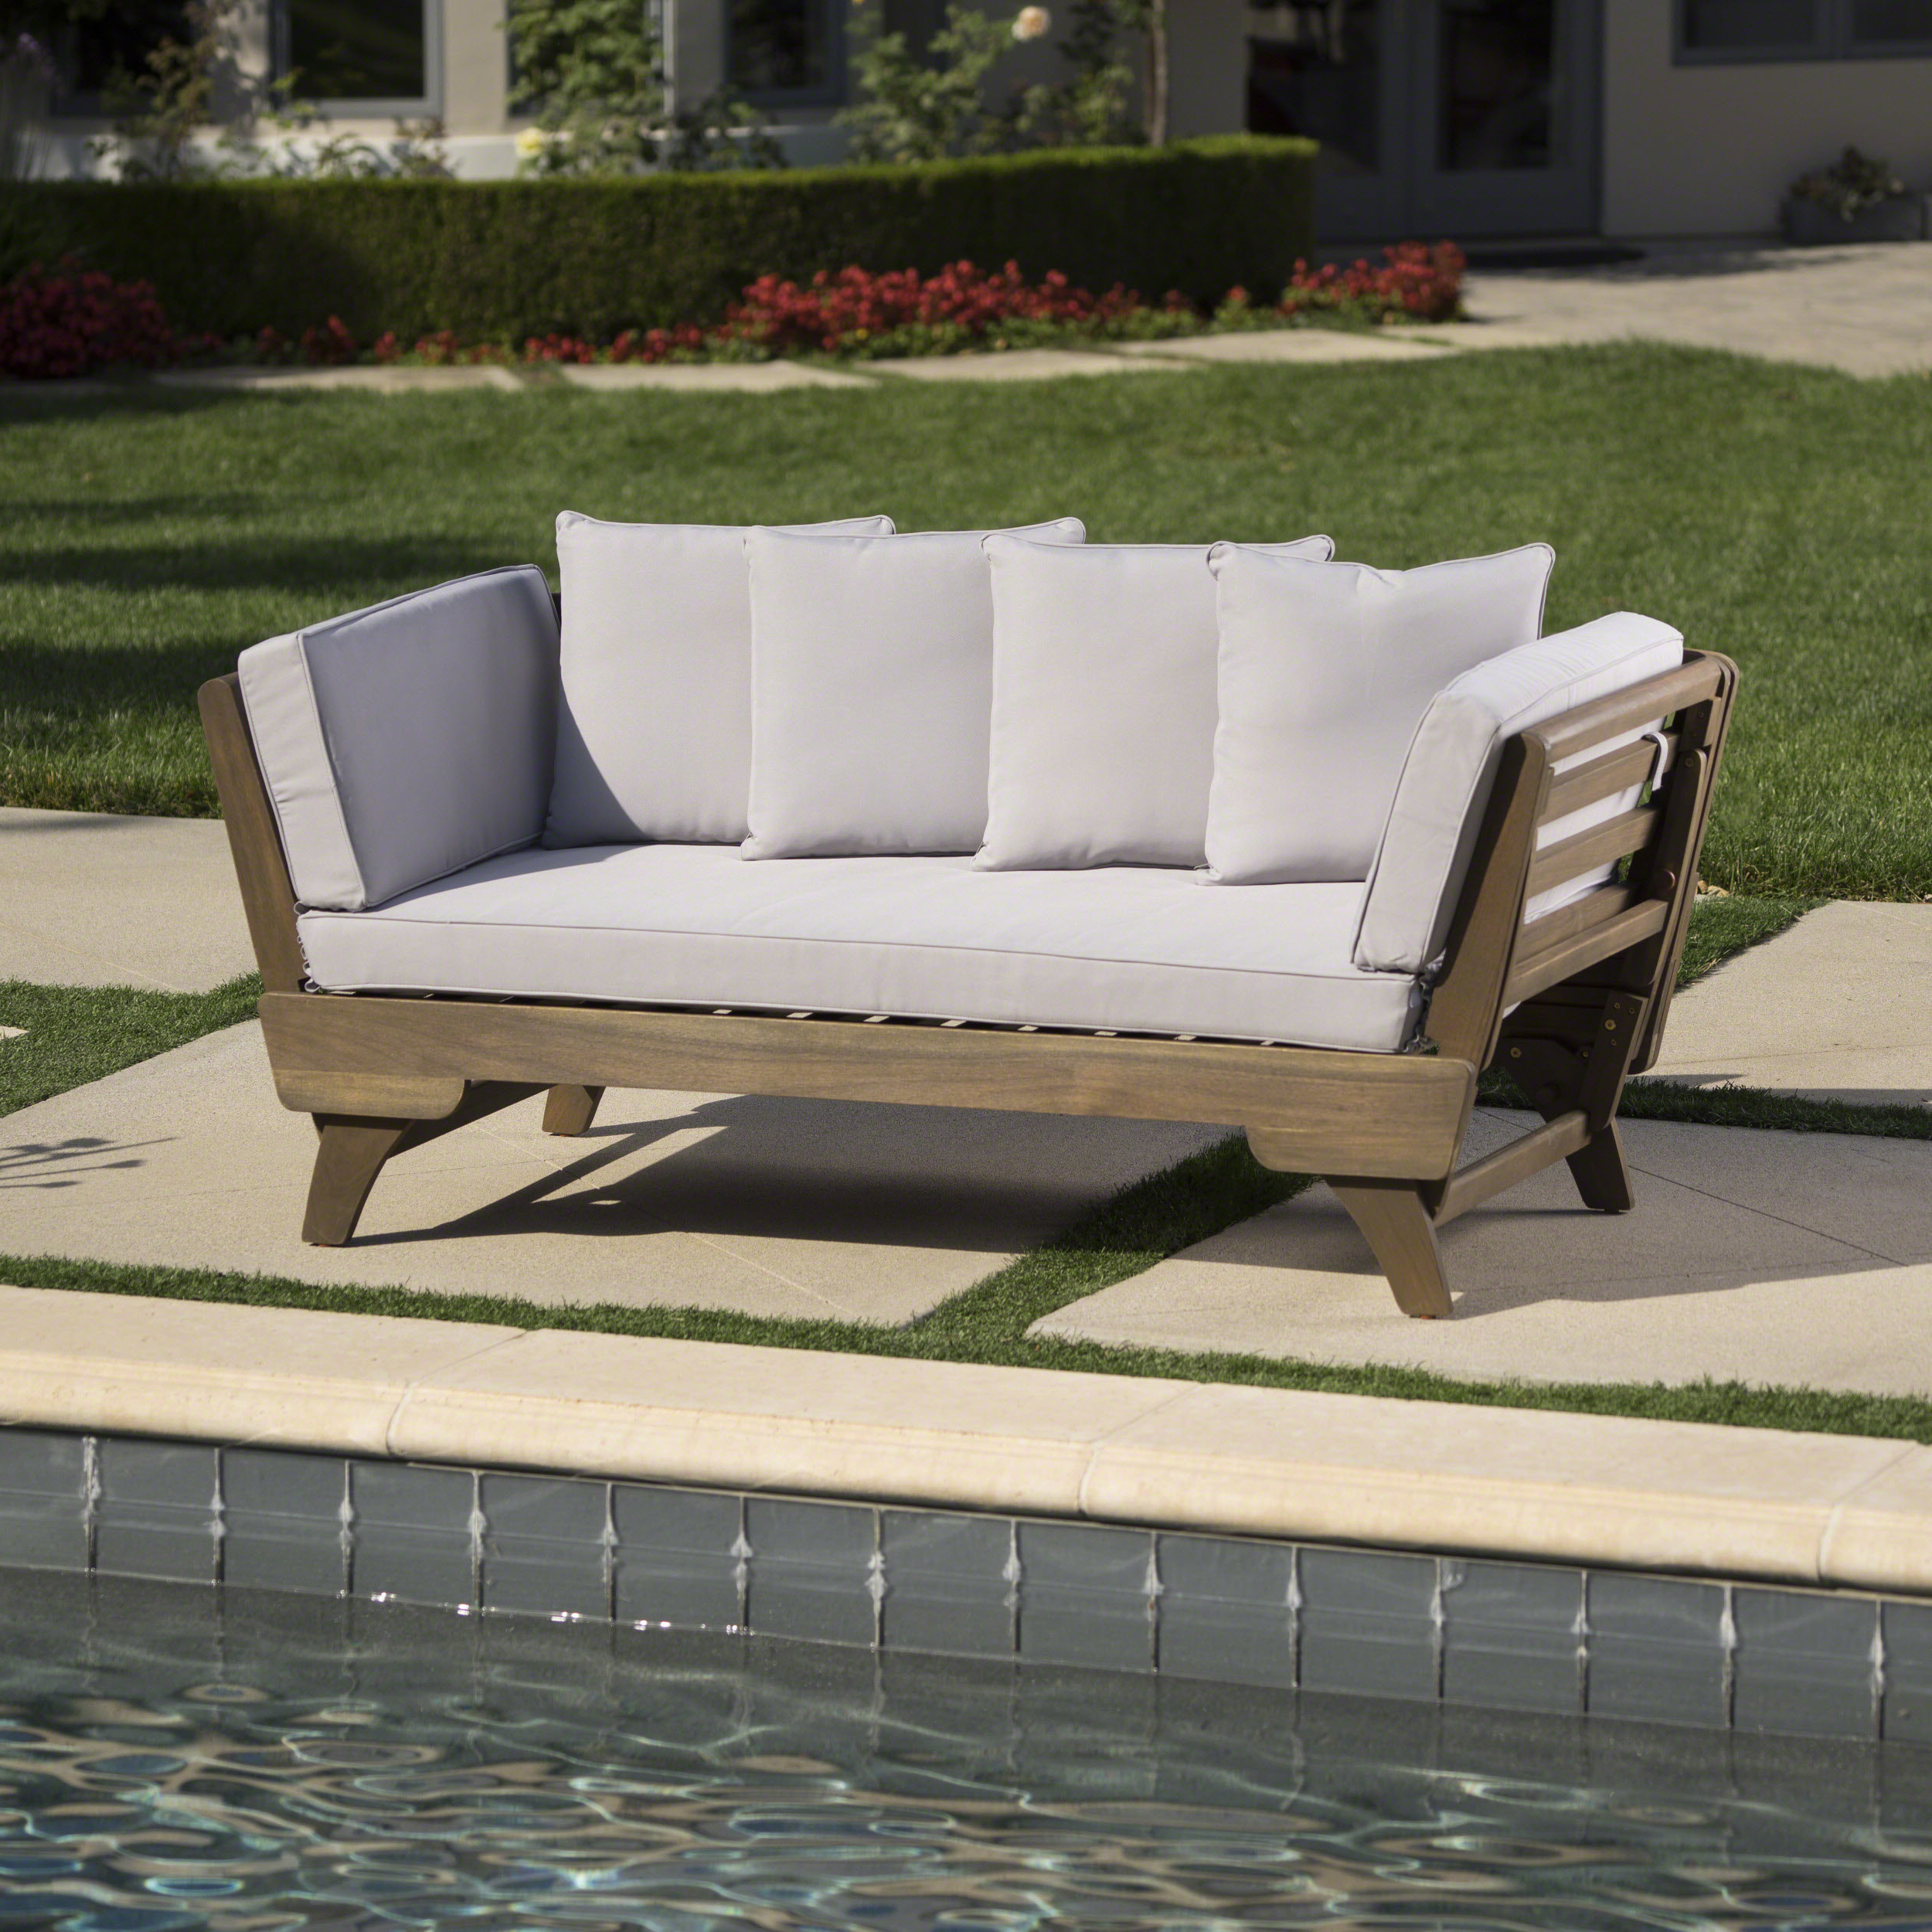 Farmhouse & Rustic Daybed Outdoor Sofas (View 13 of 20)